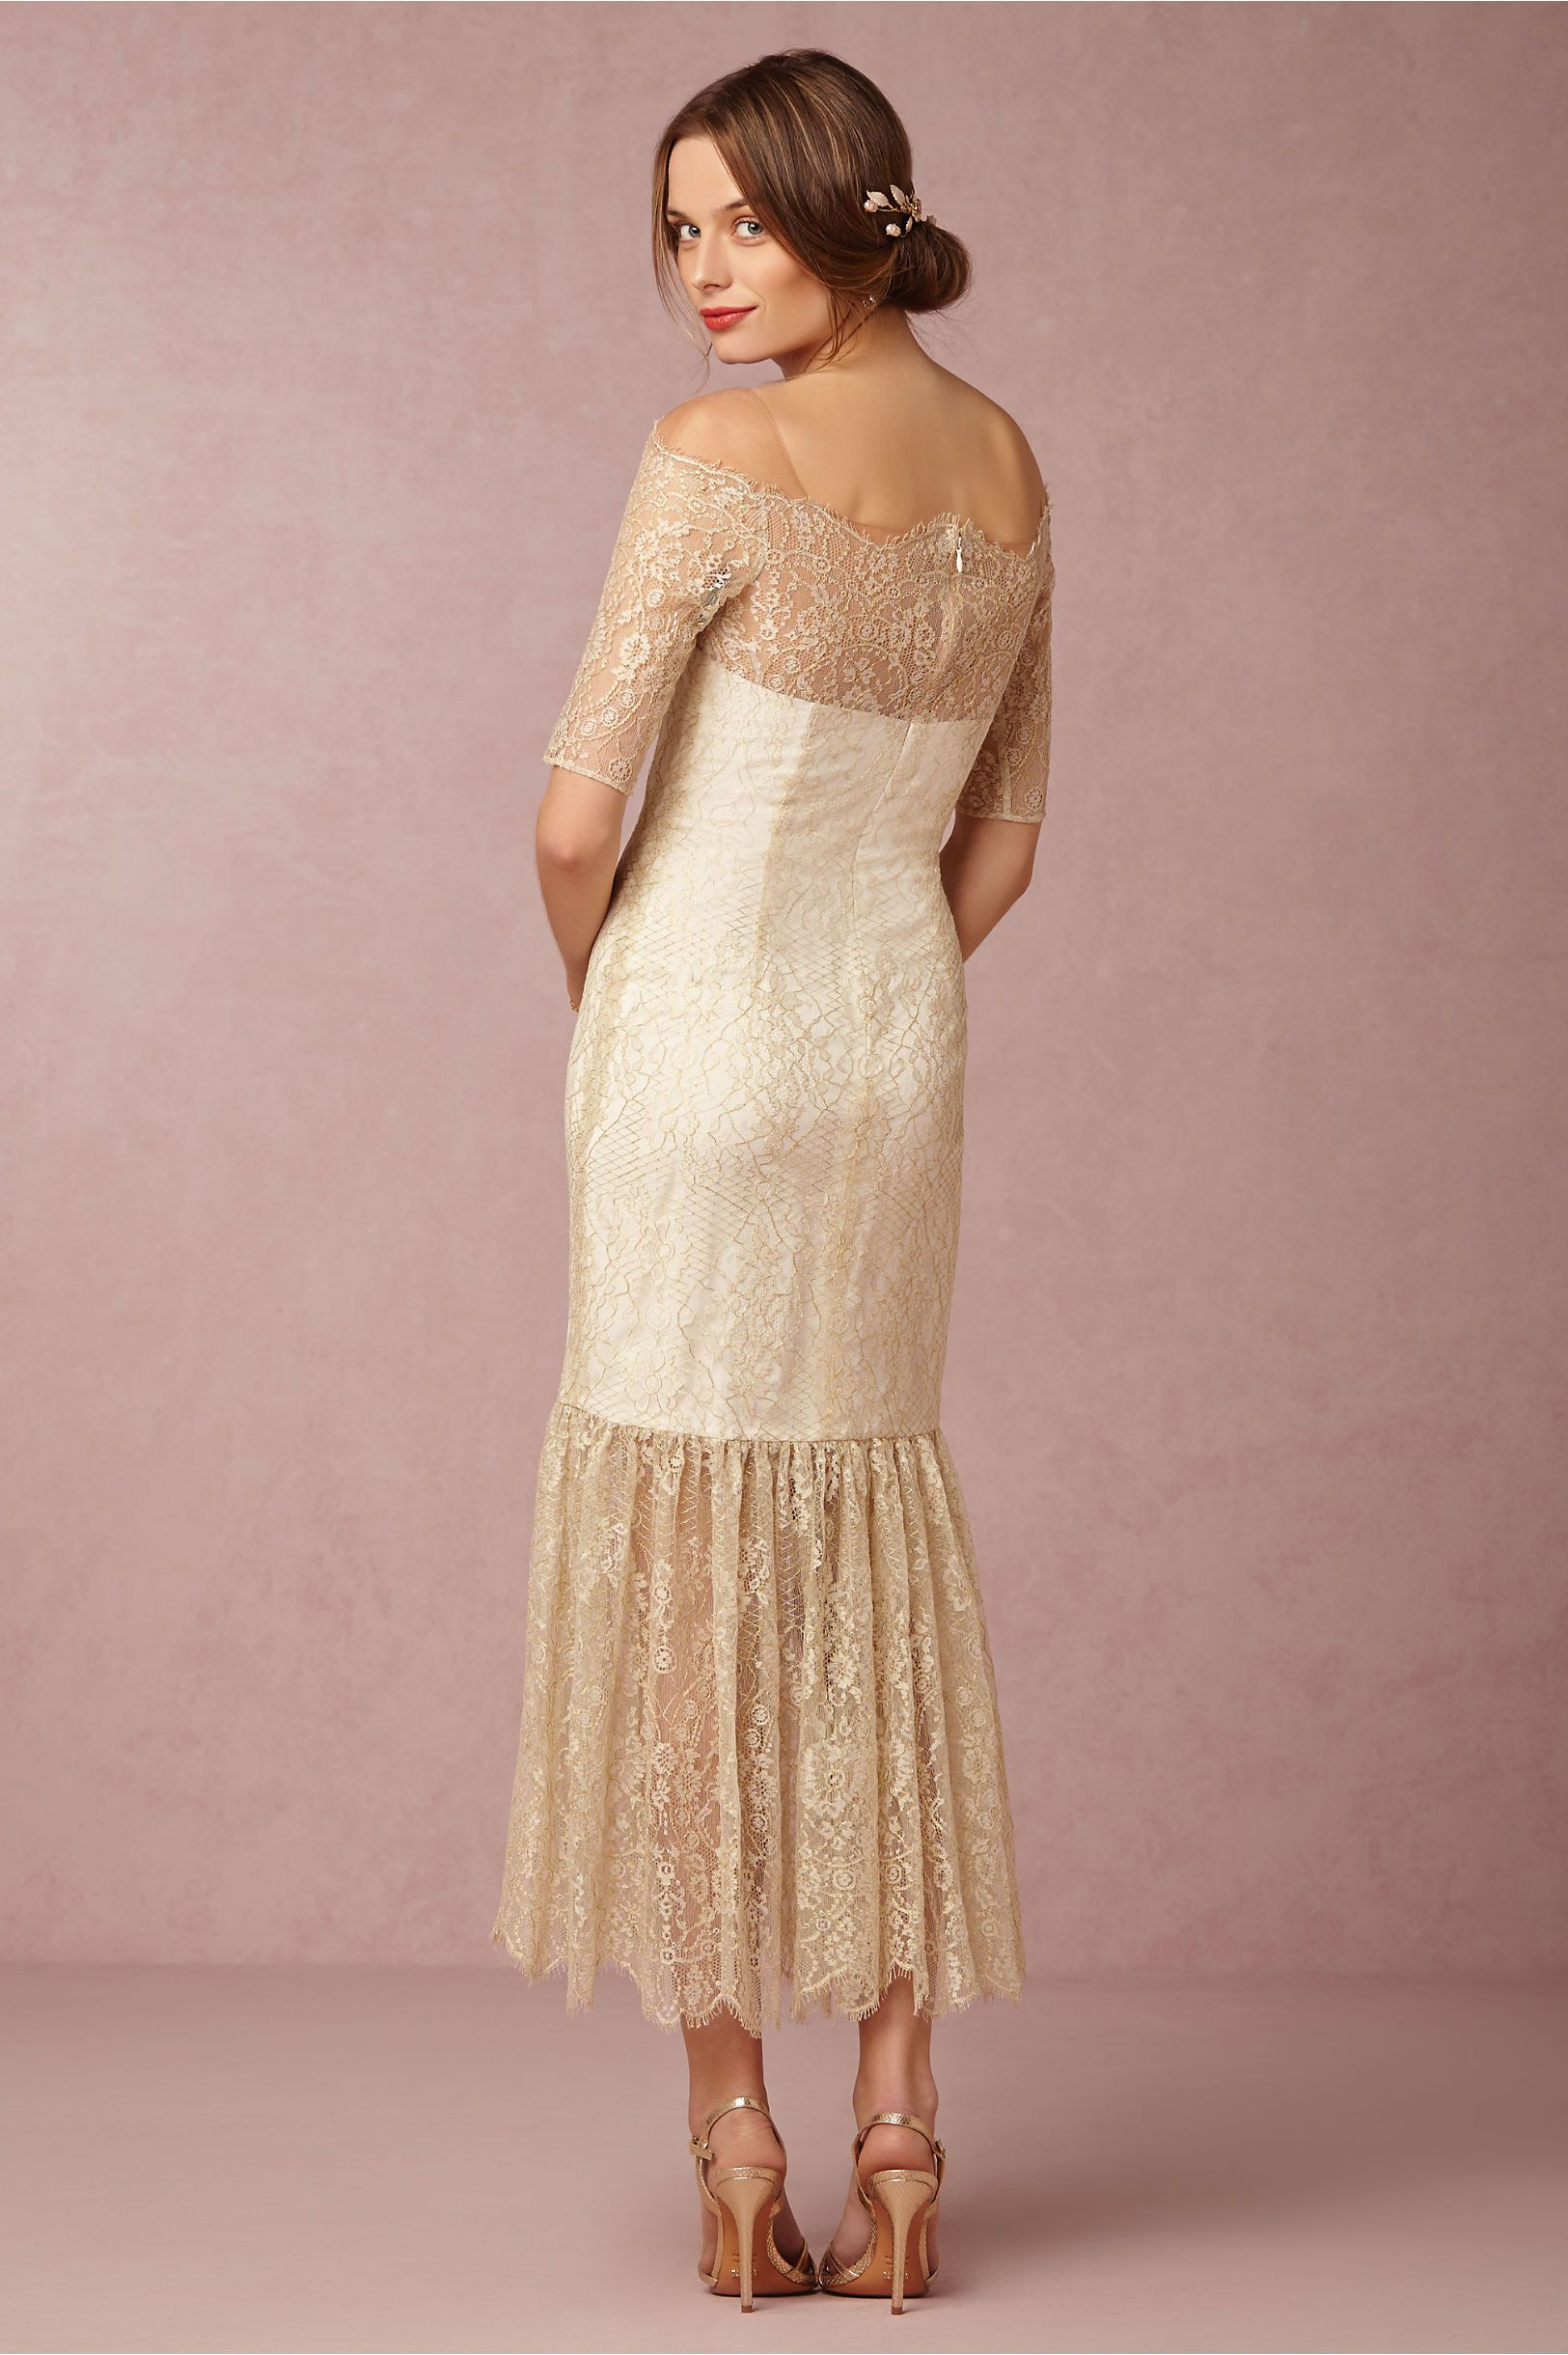 Mia Dress in Bride Wedding Dresses at BHLDN | dresses | Pinterest